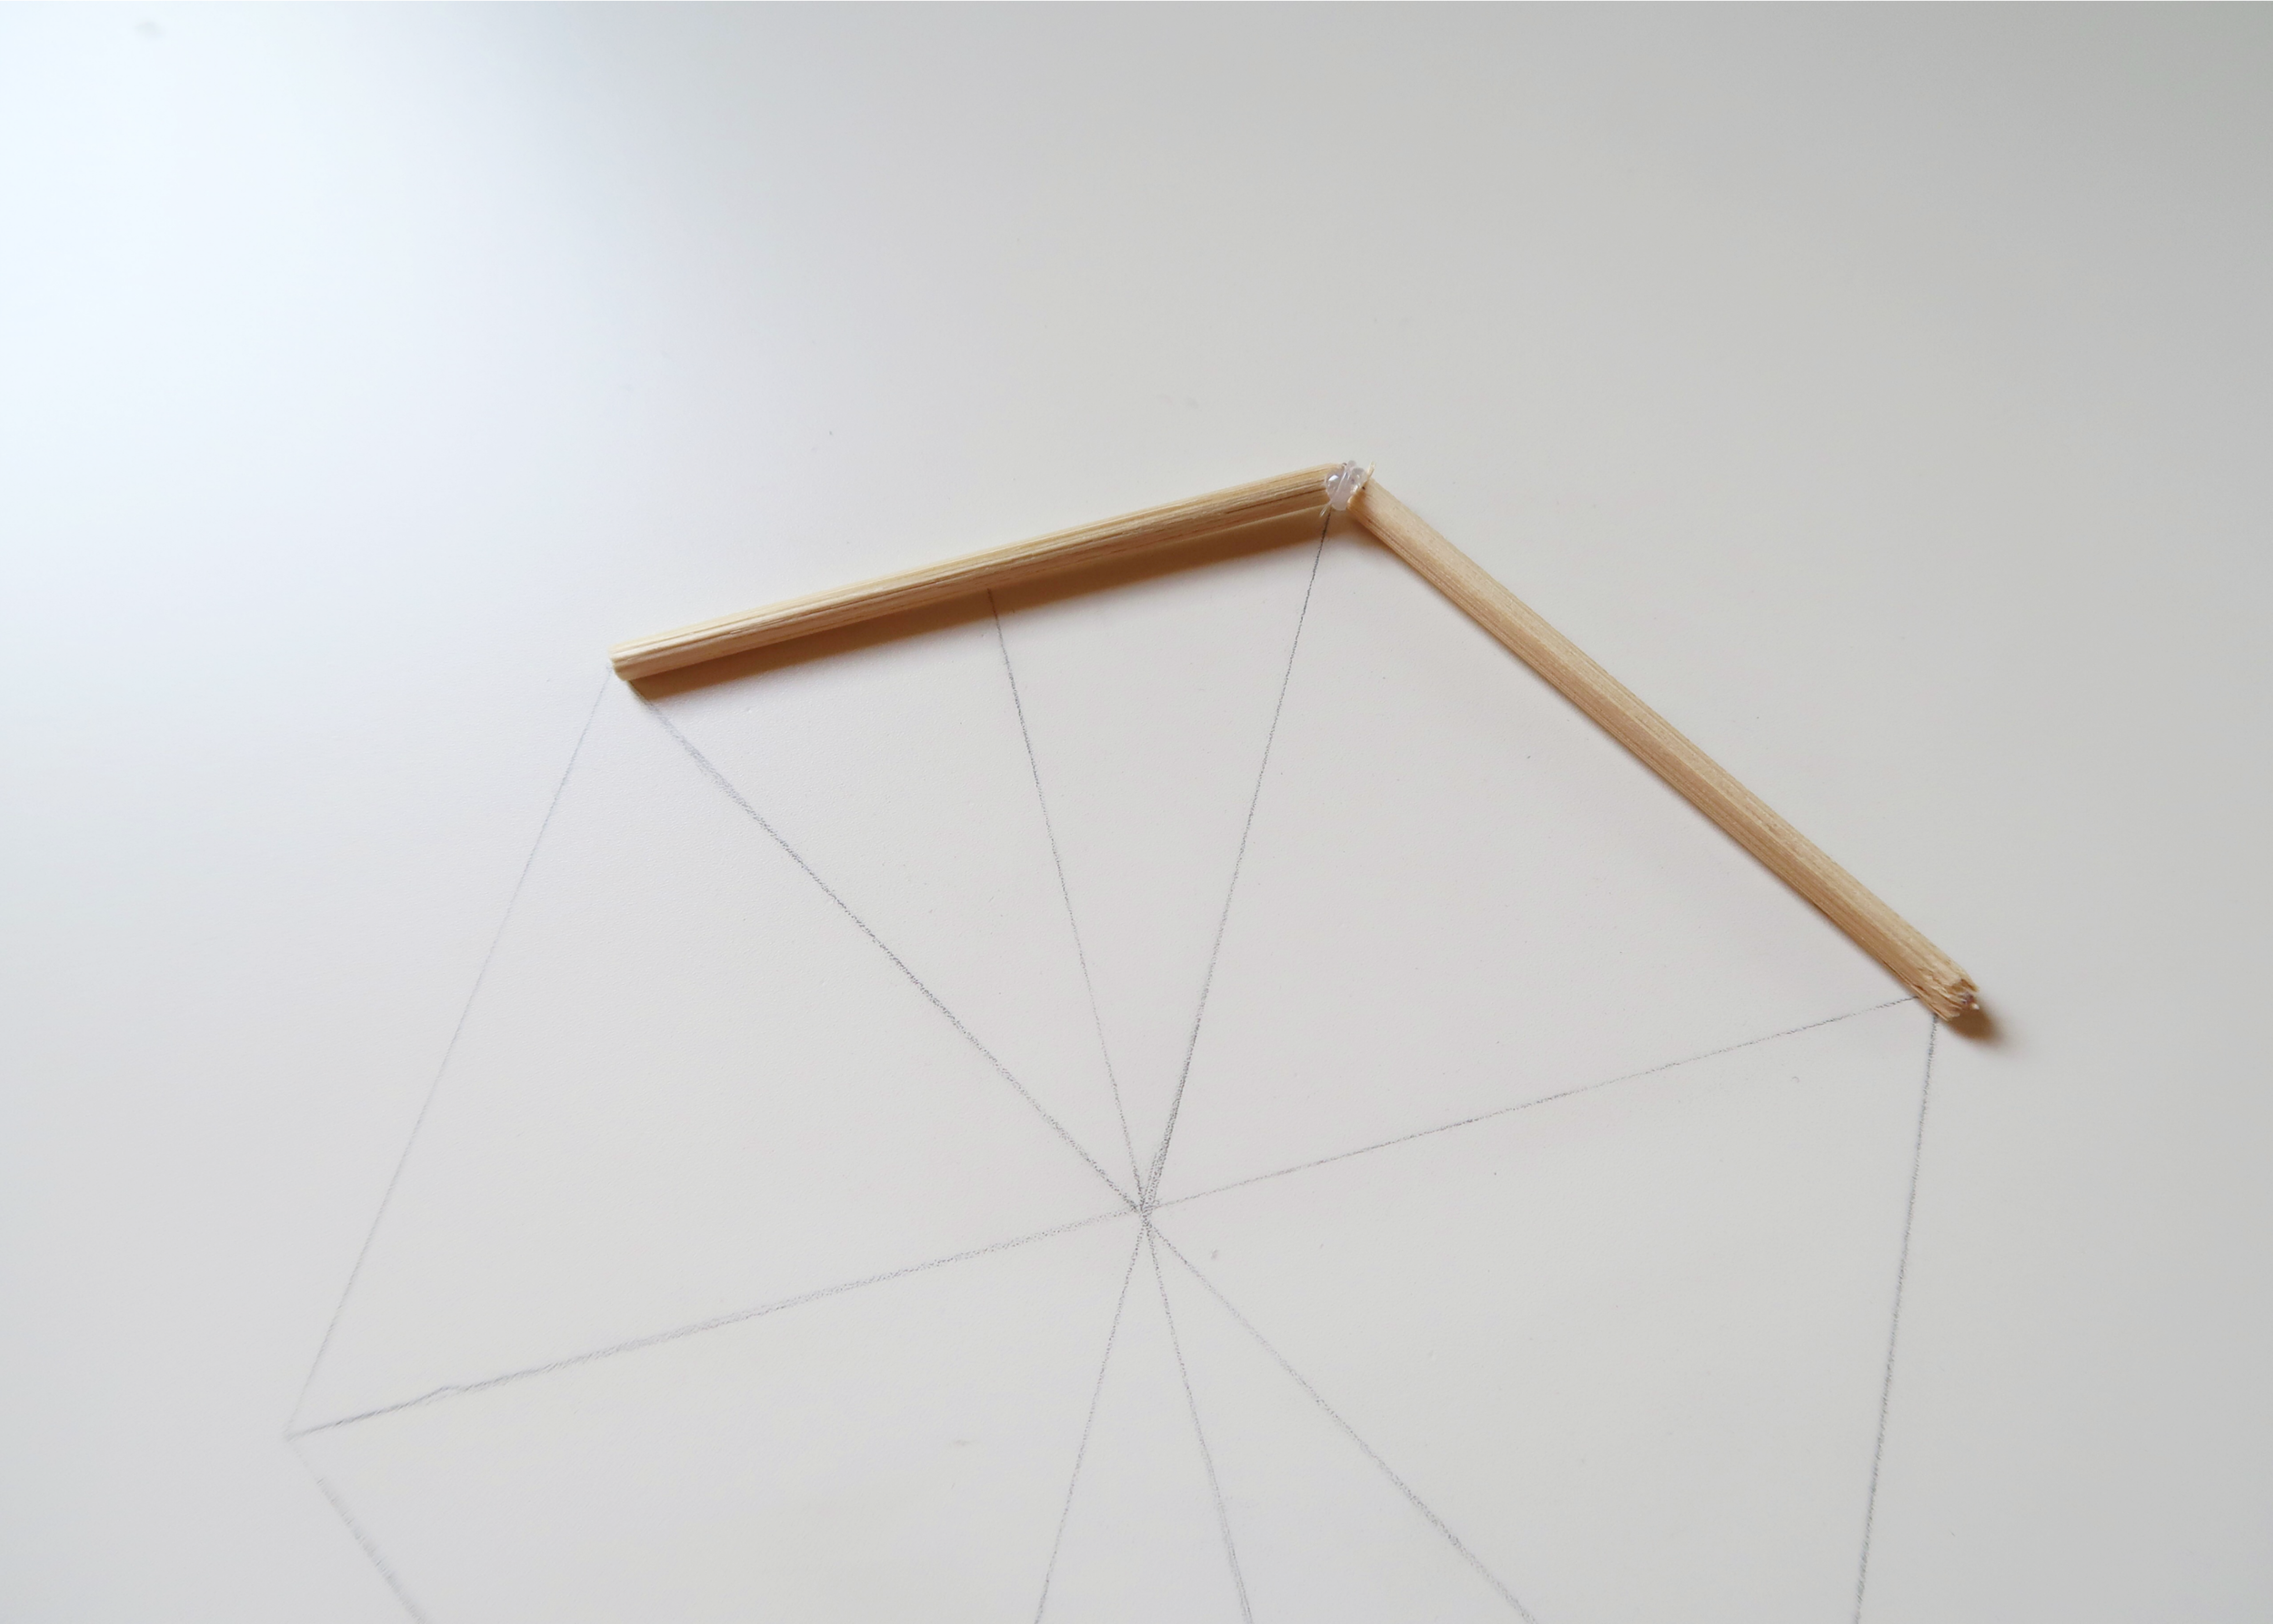 2. - Its helpful to draw out a hexagon first to guide your glueing. Once you're happy with your drawing, grab the 6cm skewers and glue them together. Do this one piece at a time, leaving them to dry in between, so that you can get the angle precise.